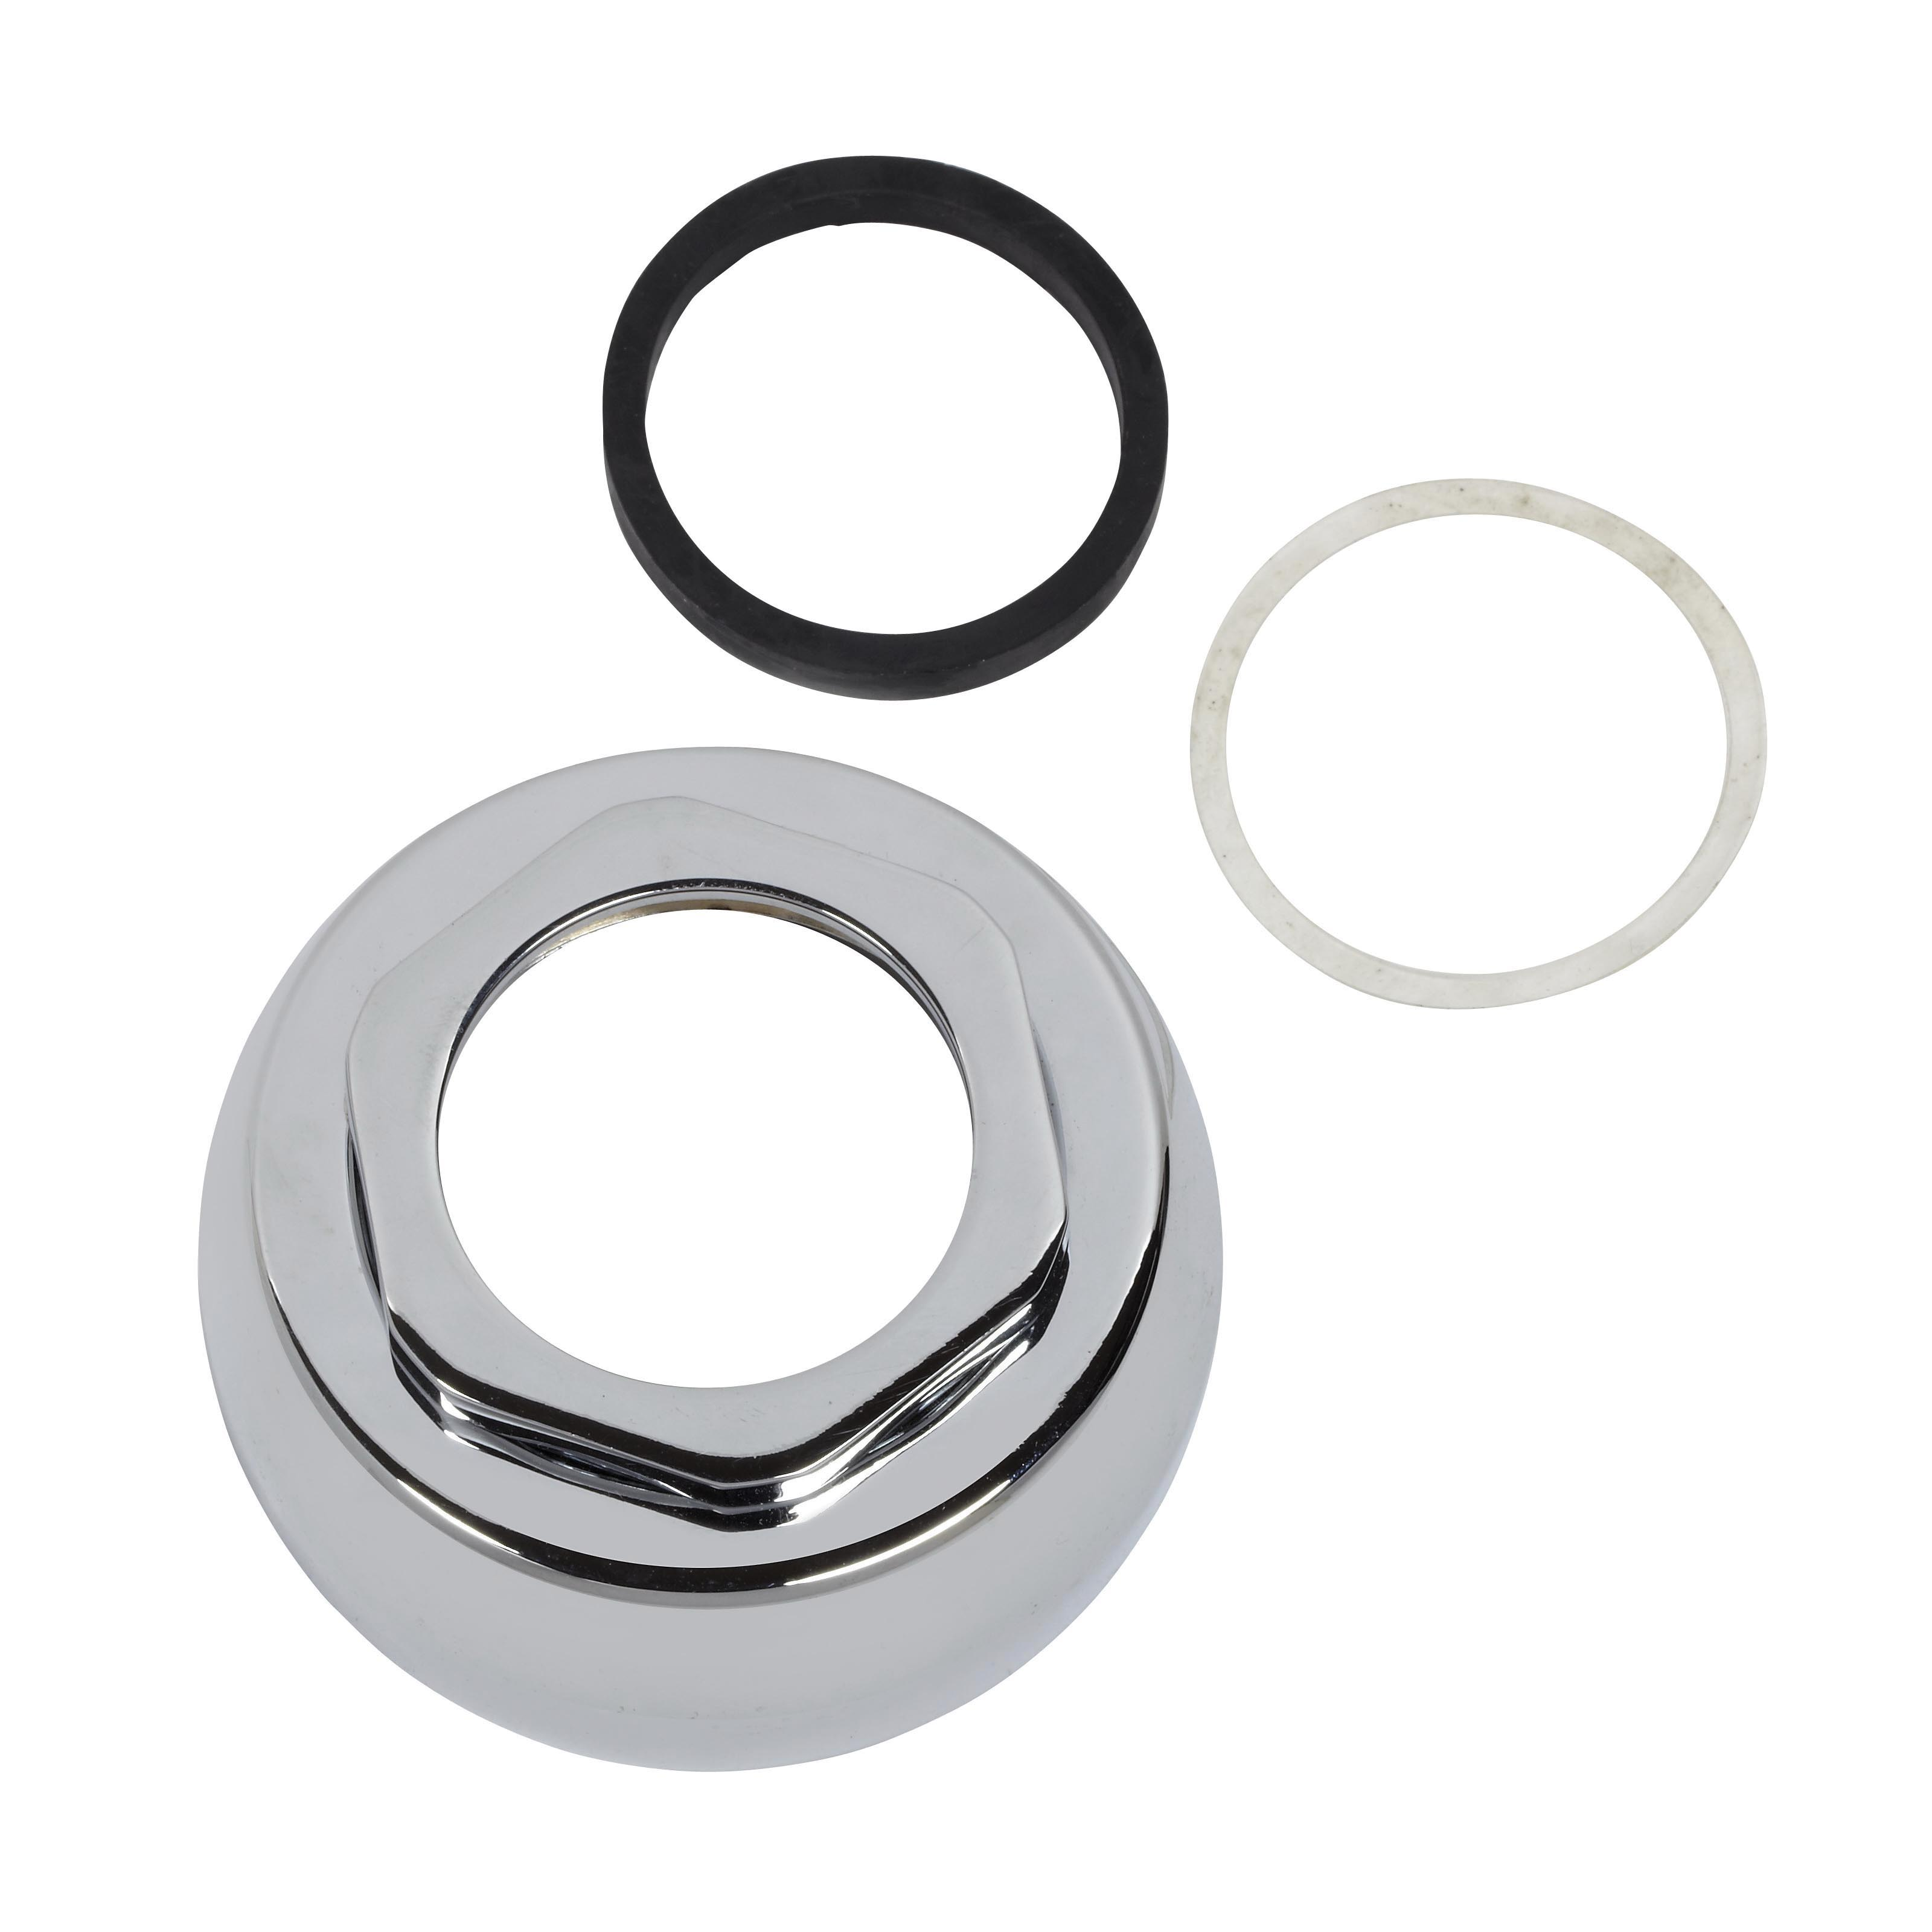 American Standard M952269-0020A Spud Assembly Kit, 1-1/2 in, For Use With American Standard Flush Valve, Polished Chrome, Import